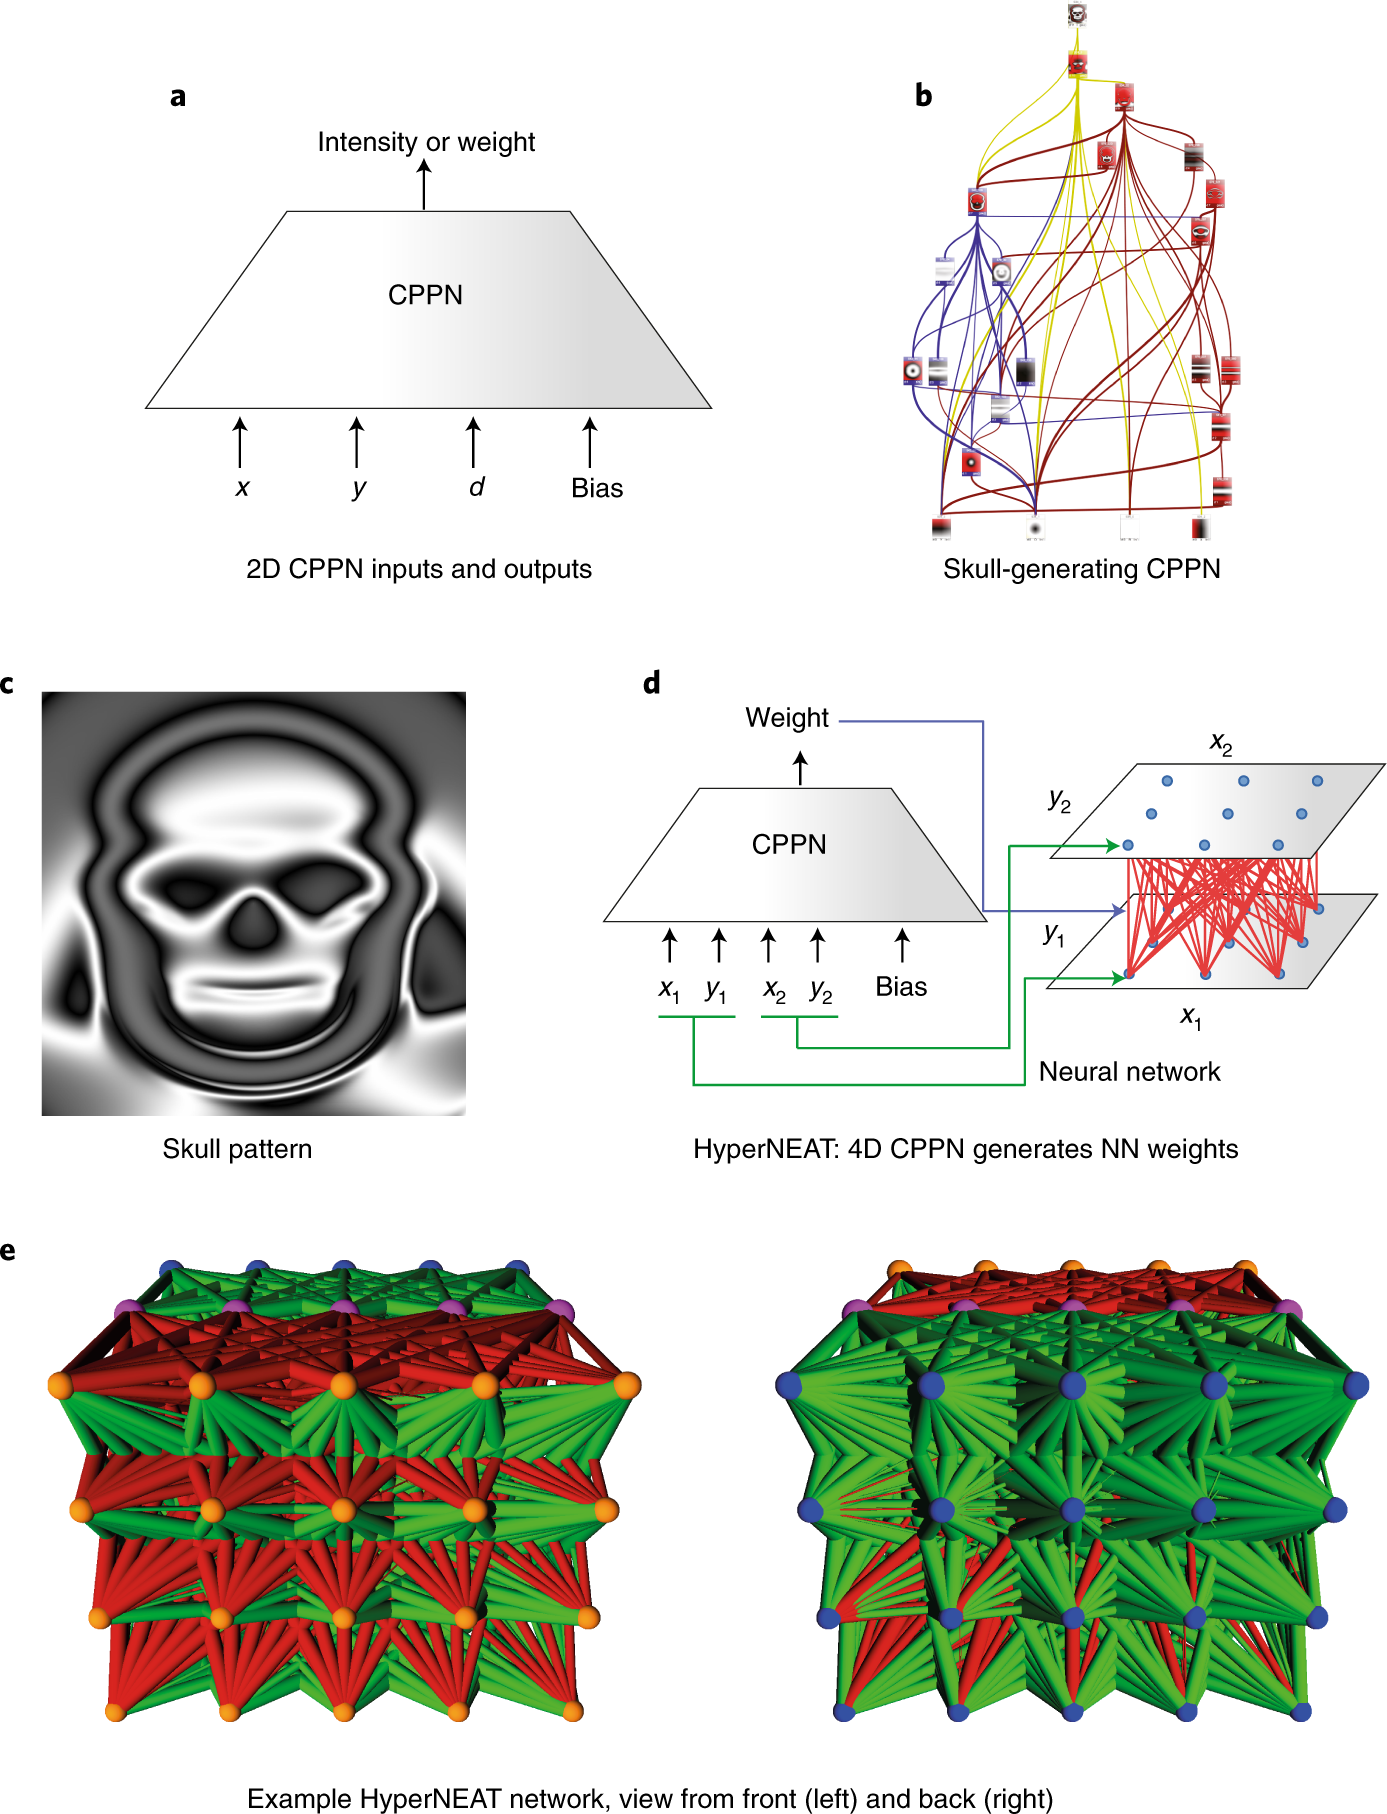 Designing neural networks through neuroevolution | Nature Machine